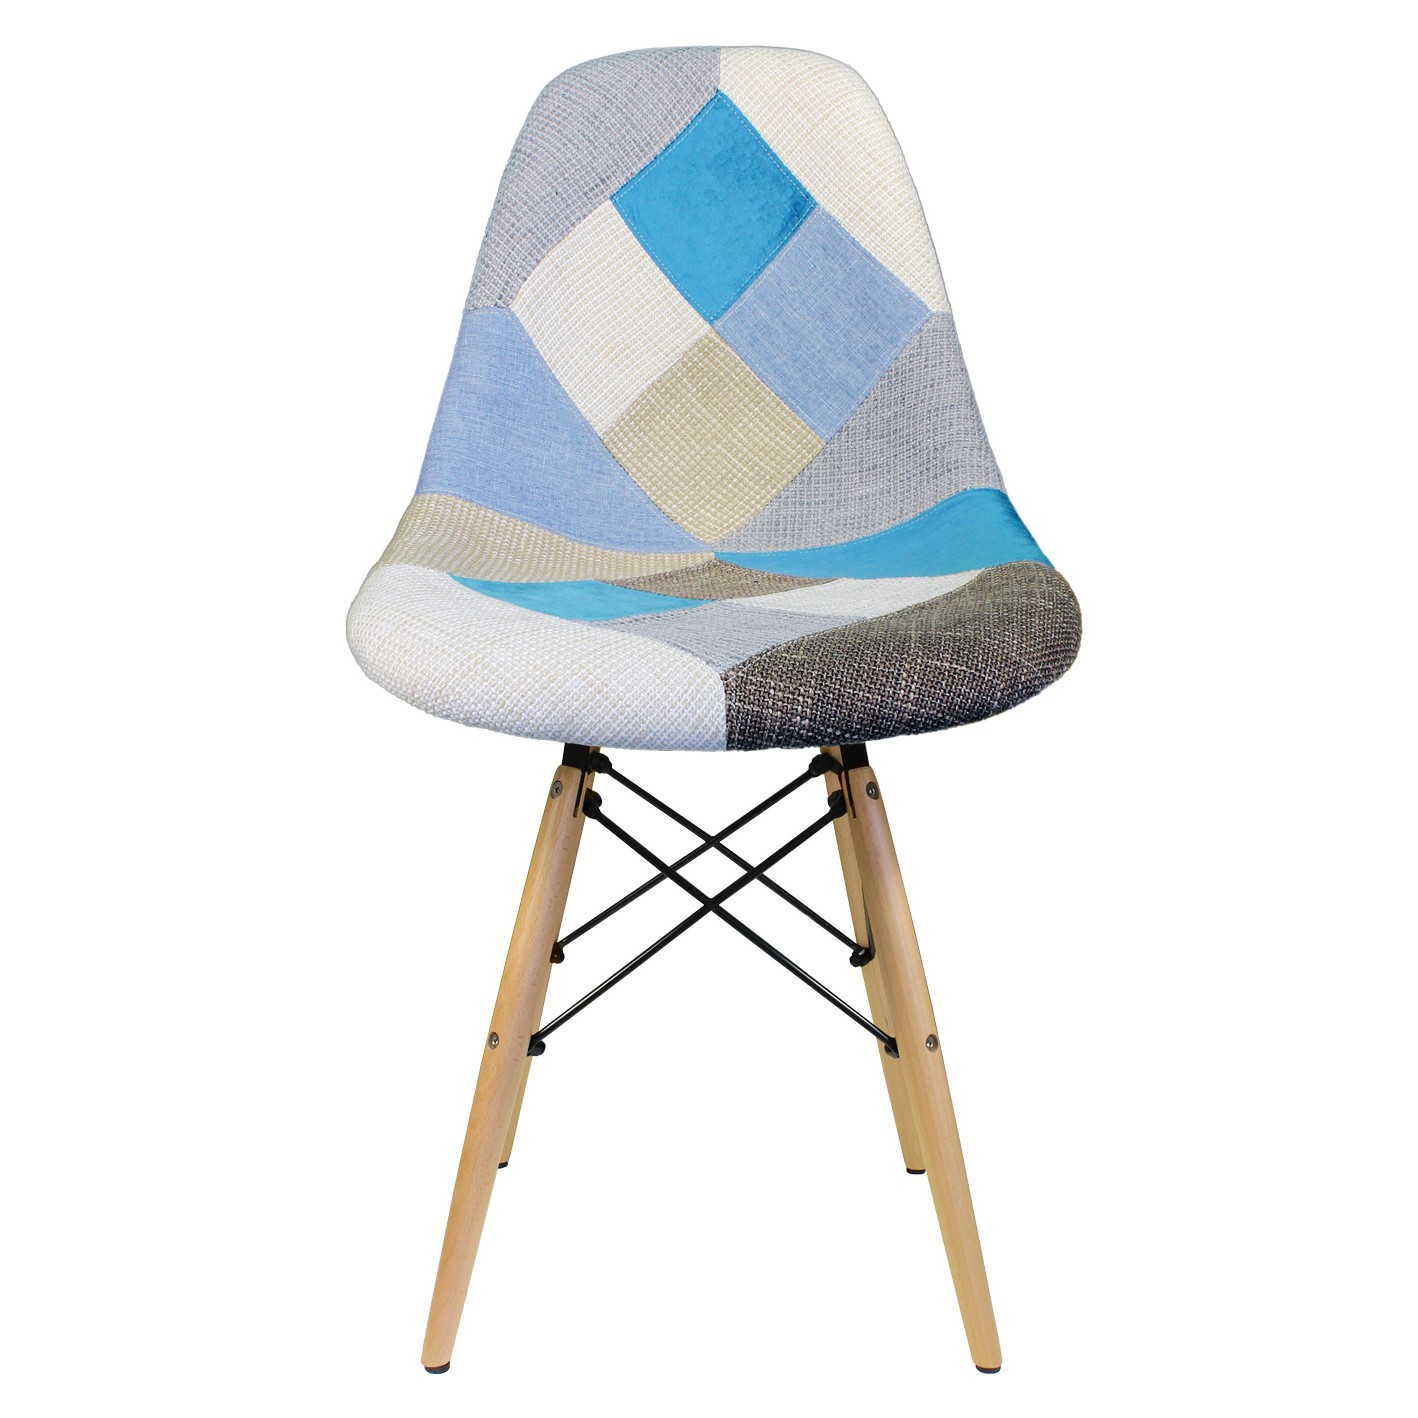 Patchwork fabric upholstered mid century accent side dining chair · display gallery item 1 · display gallery item 2